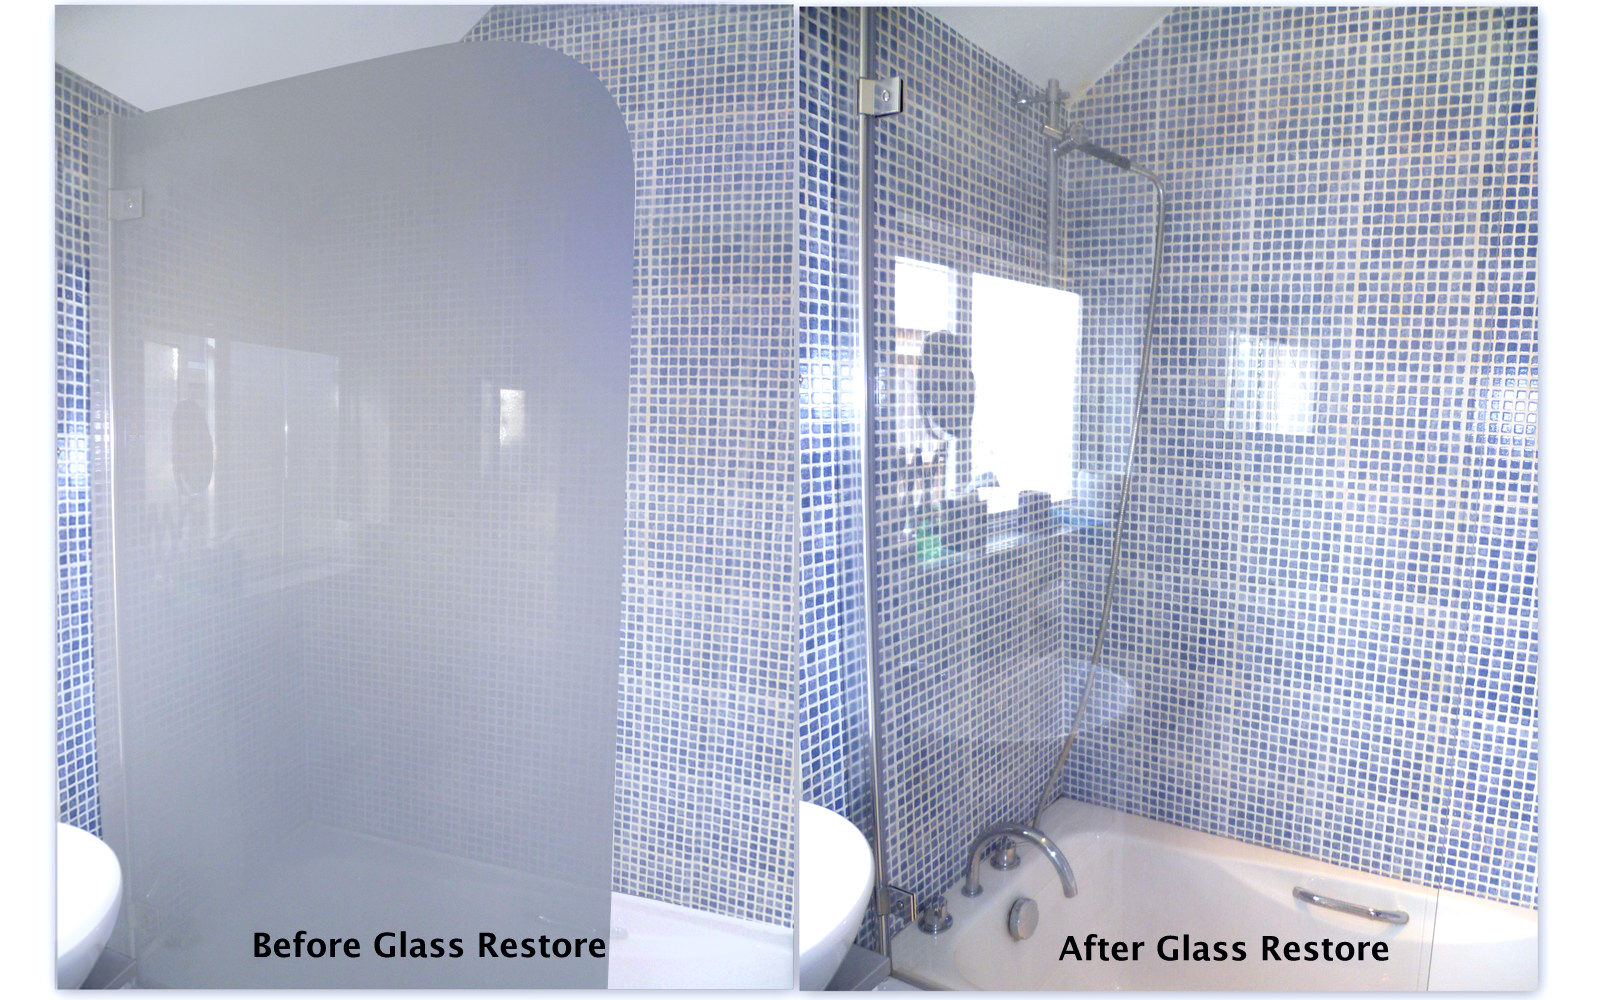 Glass Restoration Before and After.jpg